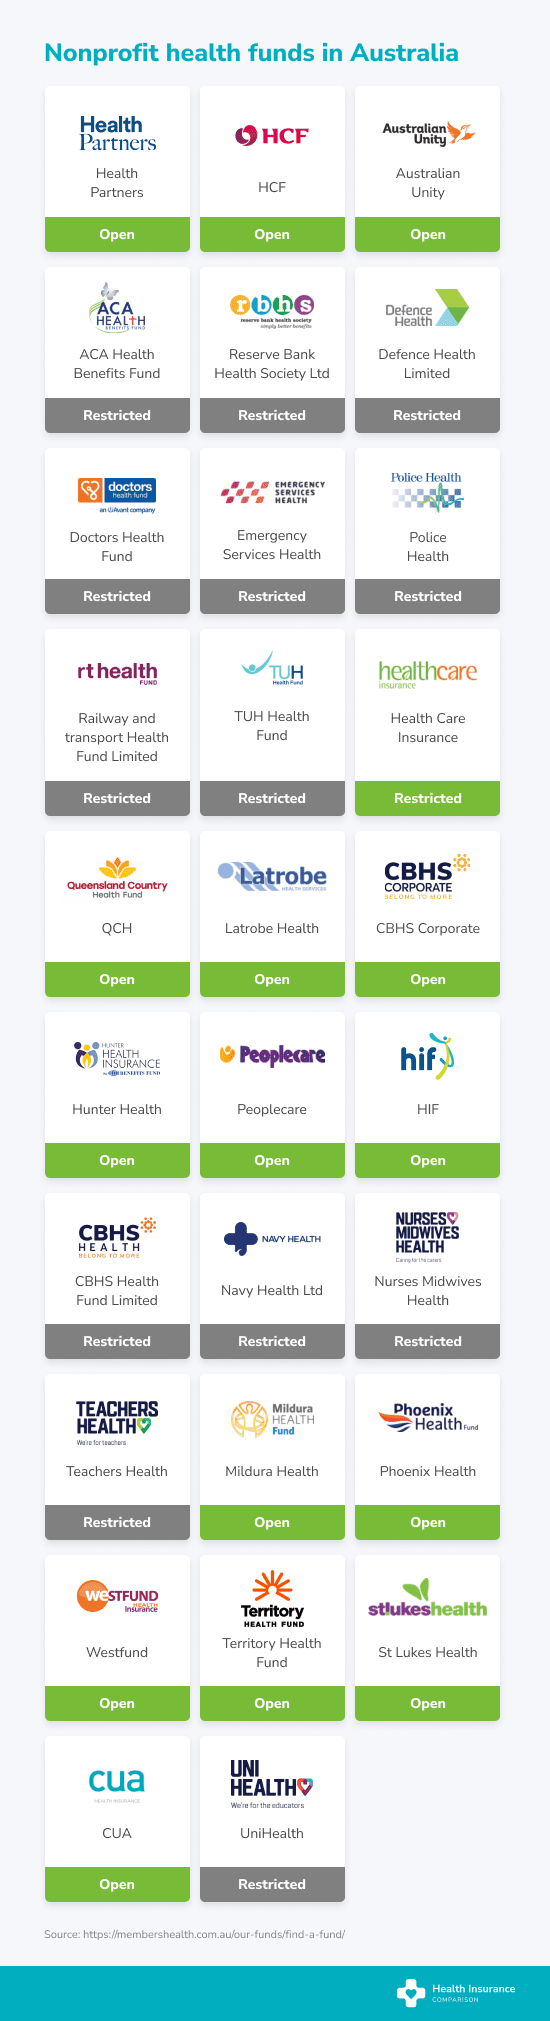 Non-profit health funds in Australia